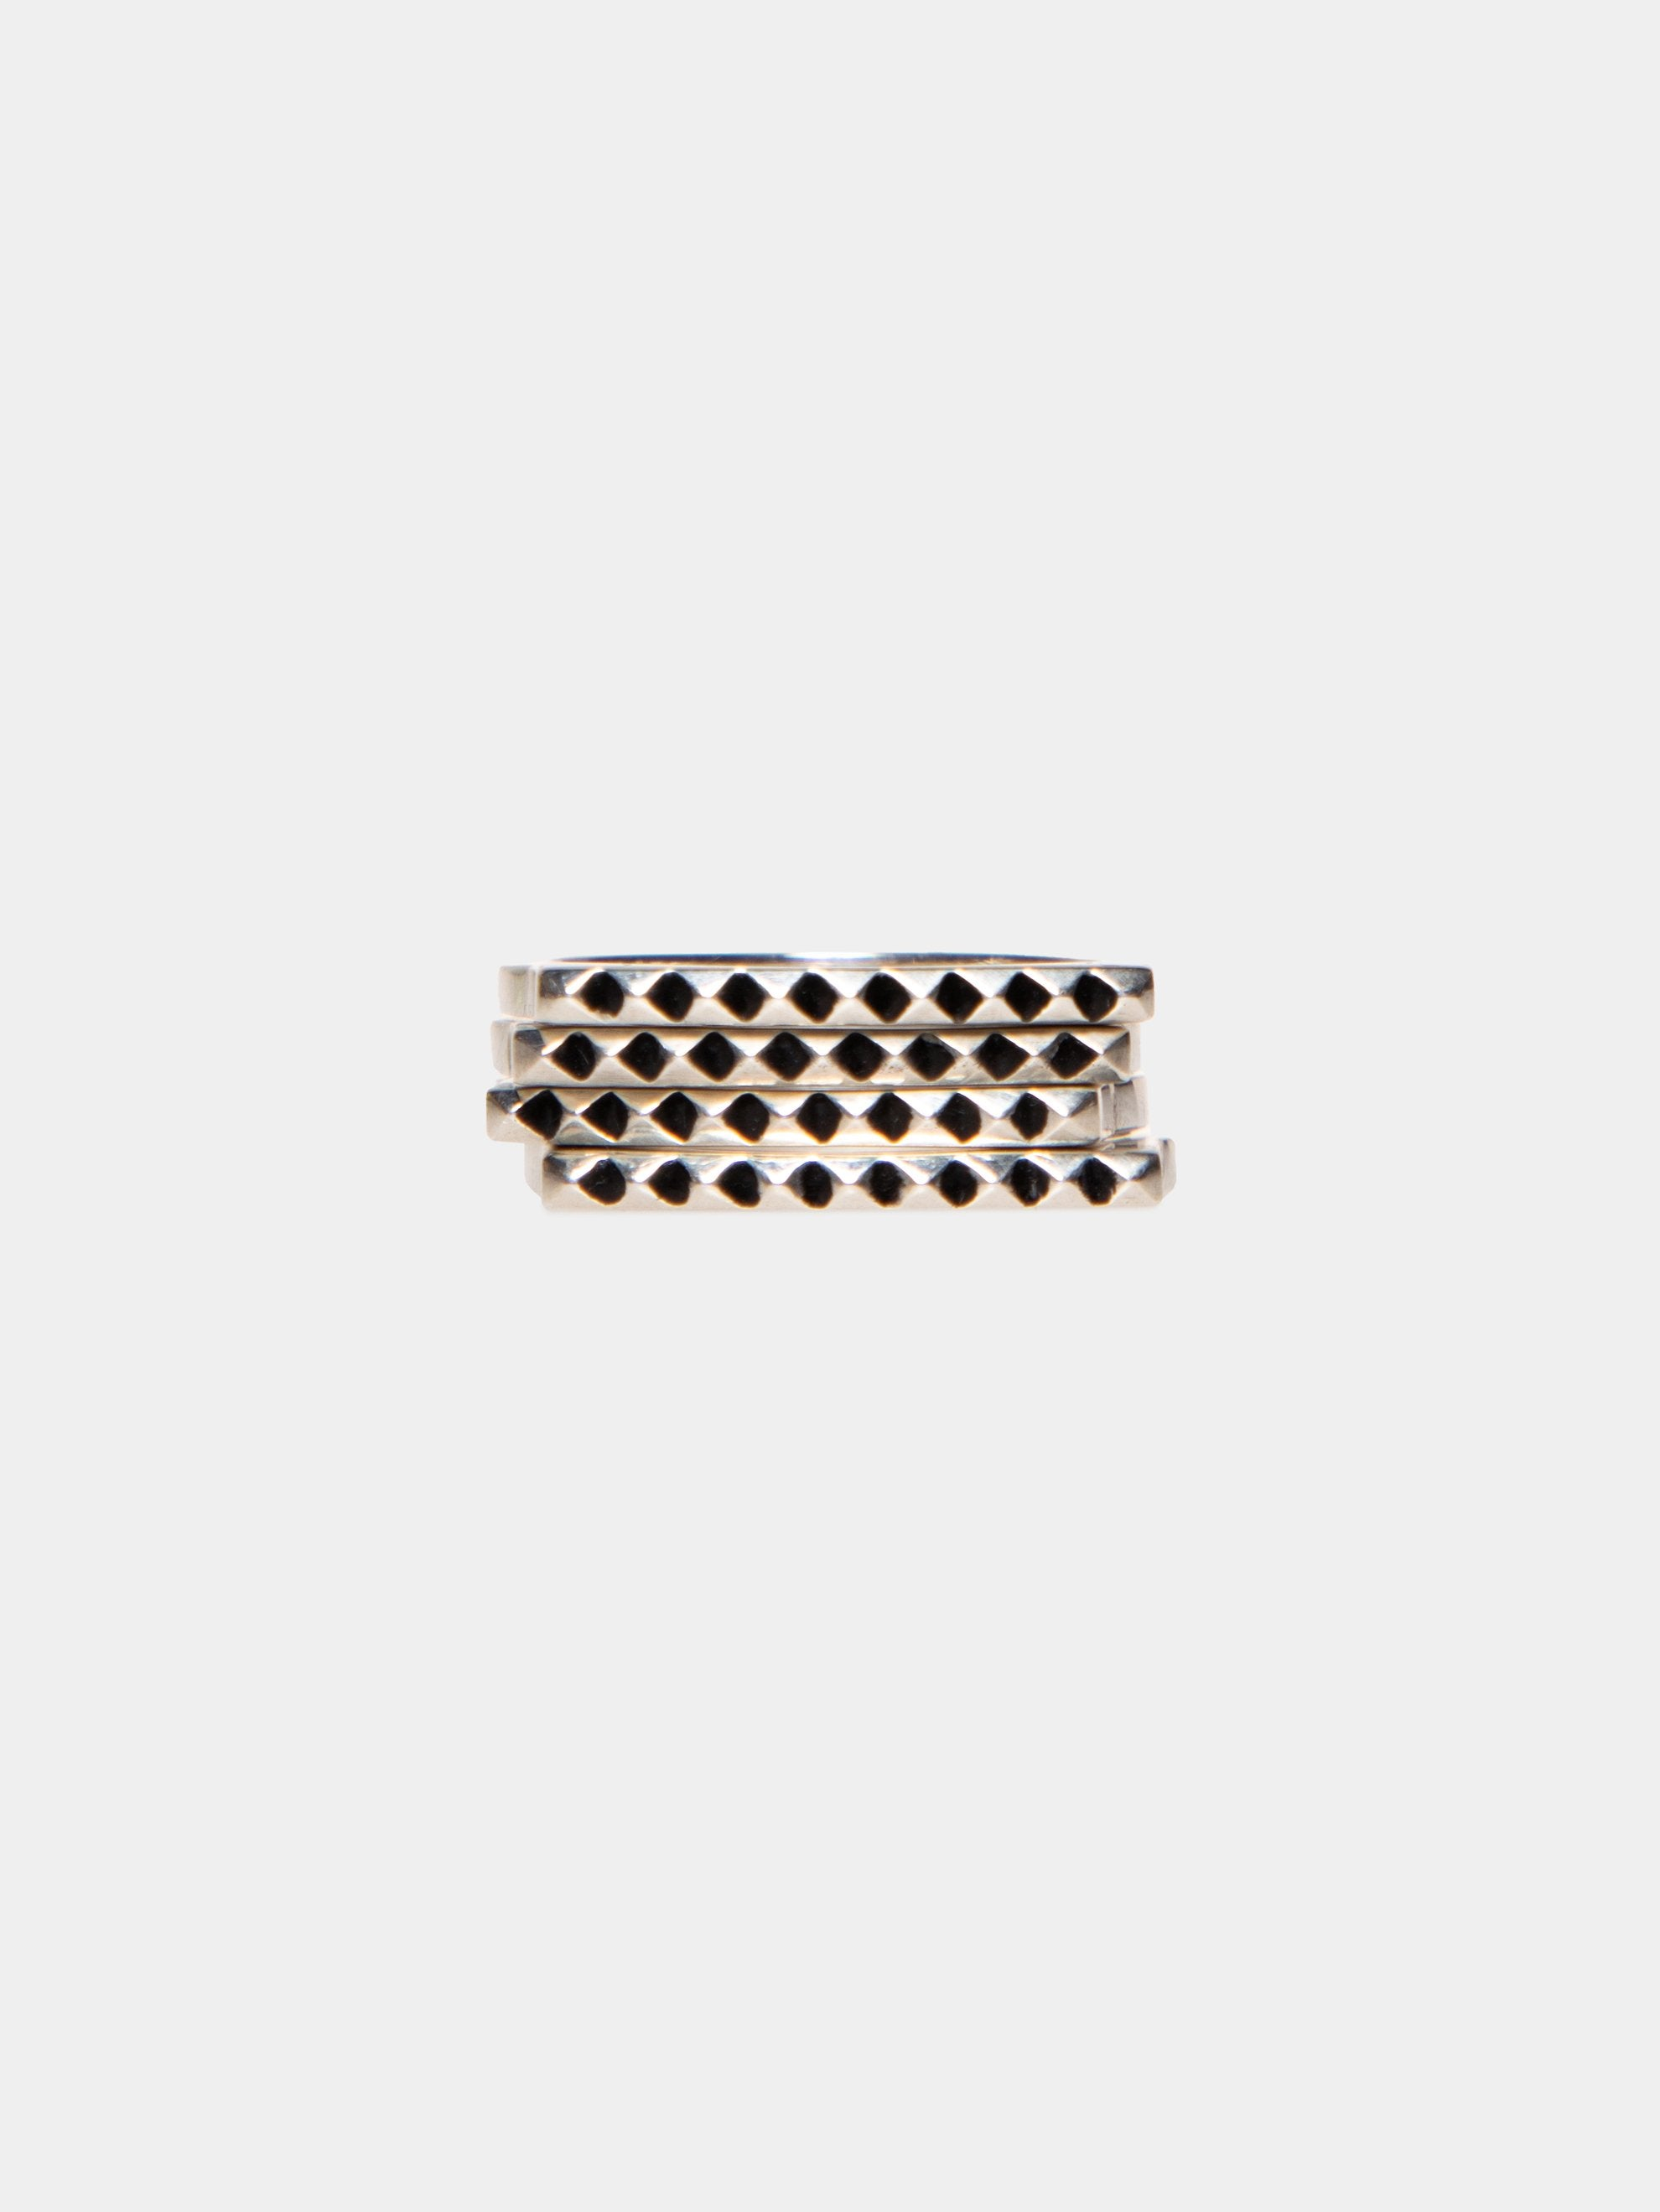 Silver .925 Stackable Ring 1